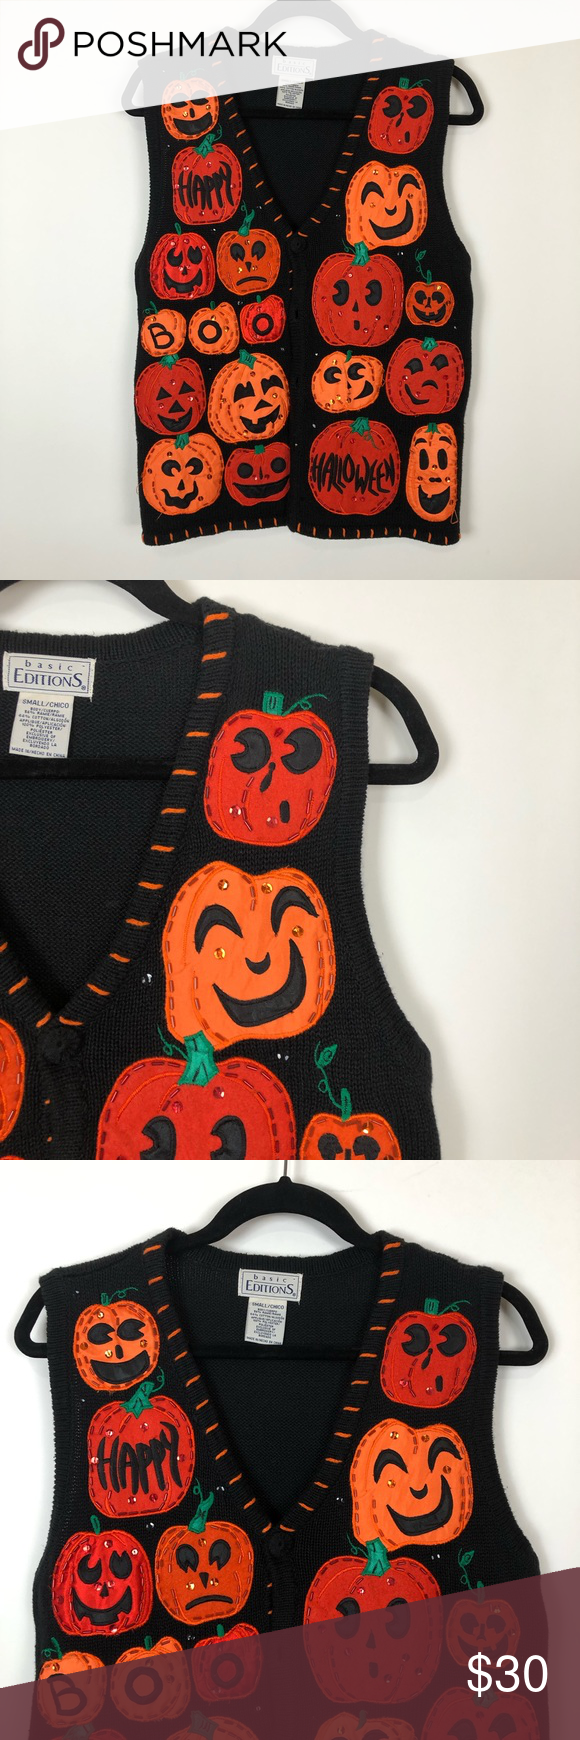 Vintage tacky spooky Halloween sweater vest small Vintage tacky spooky Halloween sweater vest small. Condition is Pre-owned. Shipped with USPS Priority Mail. Fun festive holiday attire, spooky, Halloween  Vintage tacky spooky Halloween sweater vest small Vintage tacky spooky Halloween sweater vest small. Condition is Pre-owned. Shipped with USPS Priority Mail. Fun festive holiday attire, spooky, Halloween #spookyoutfits